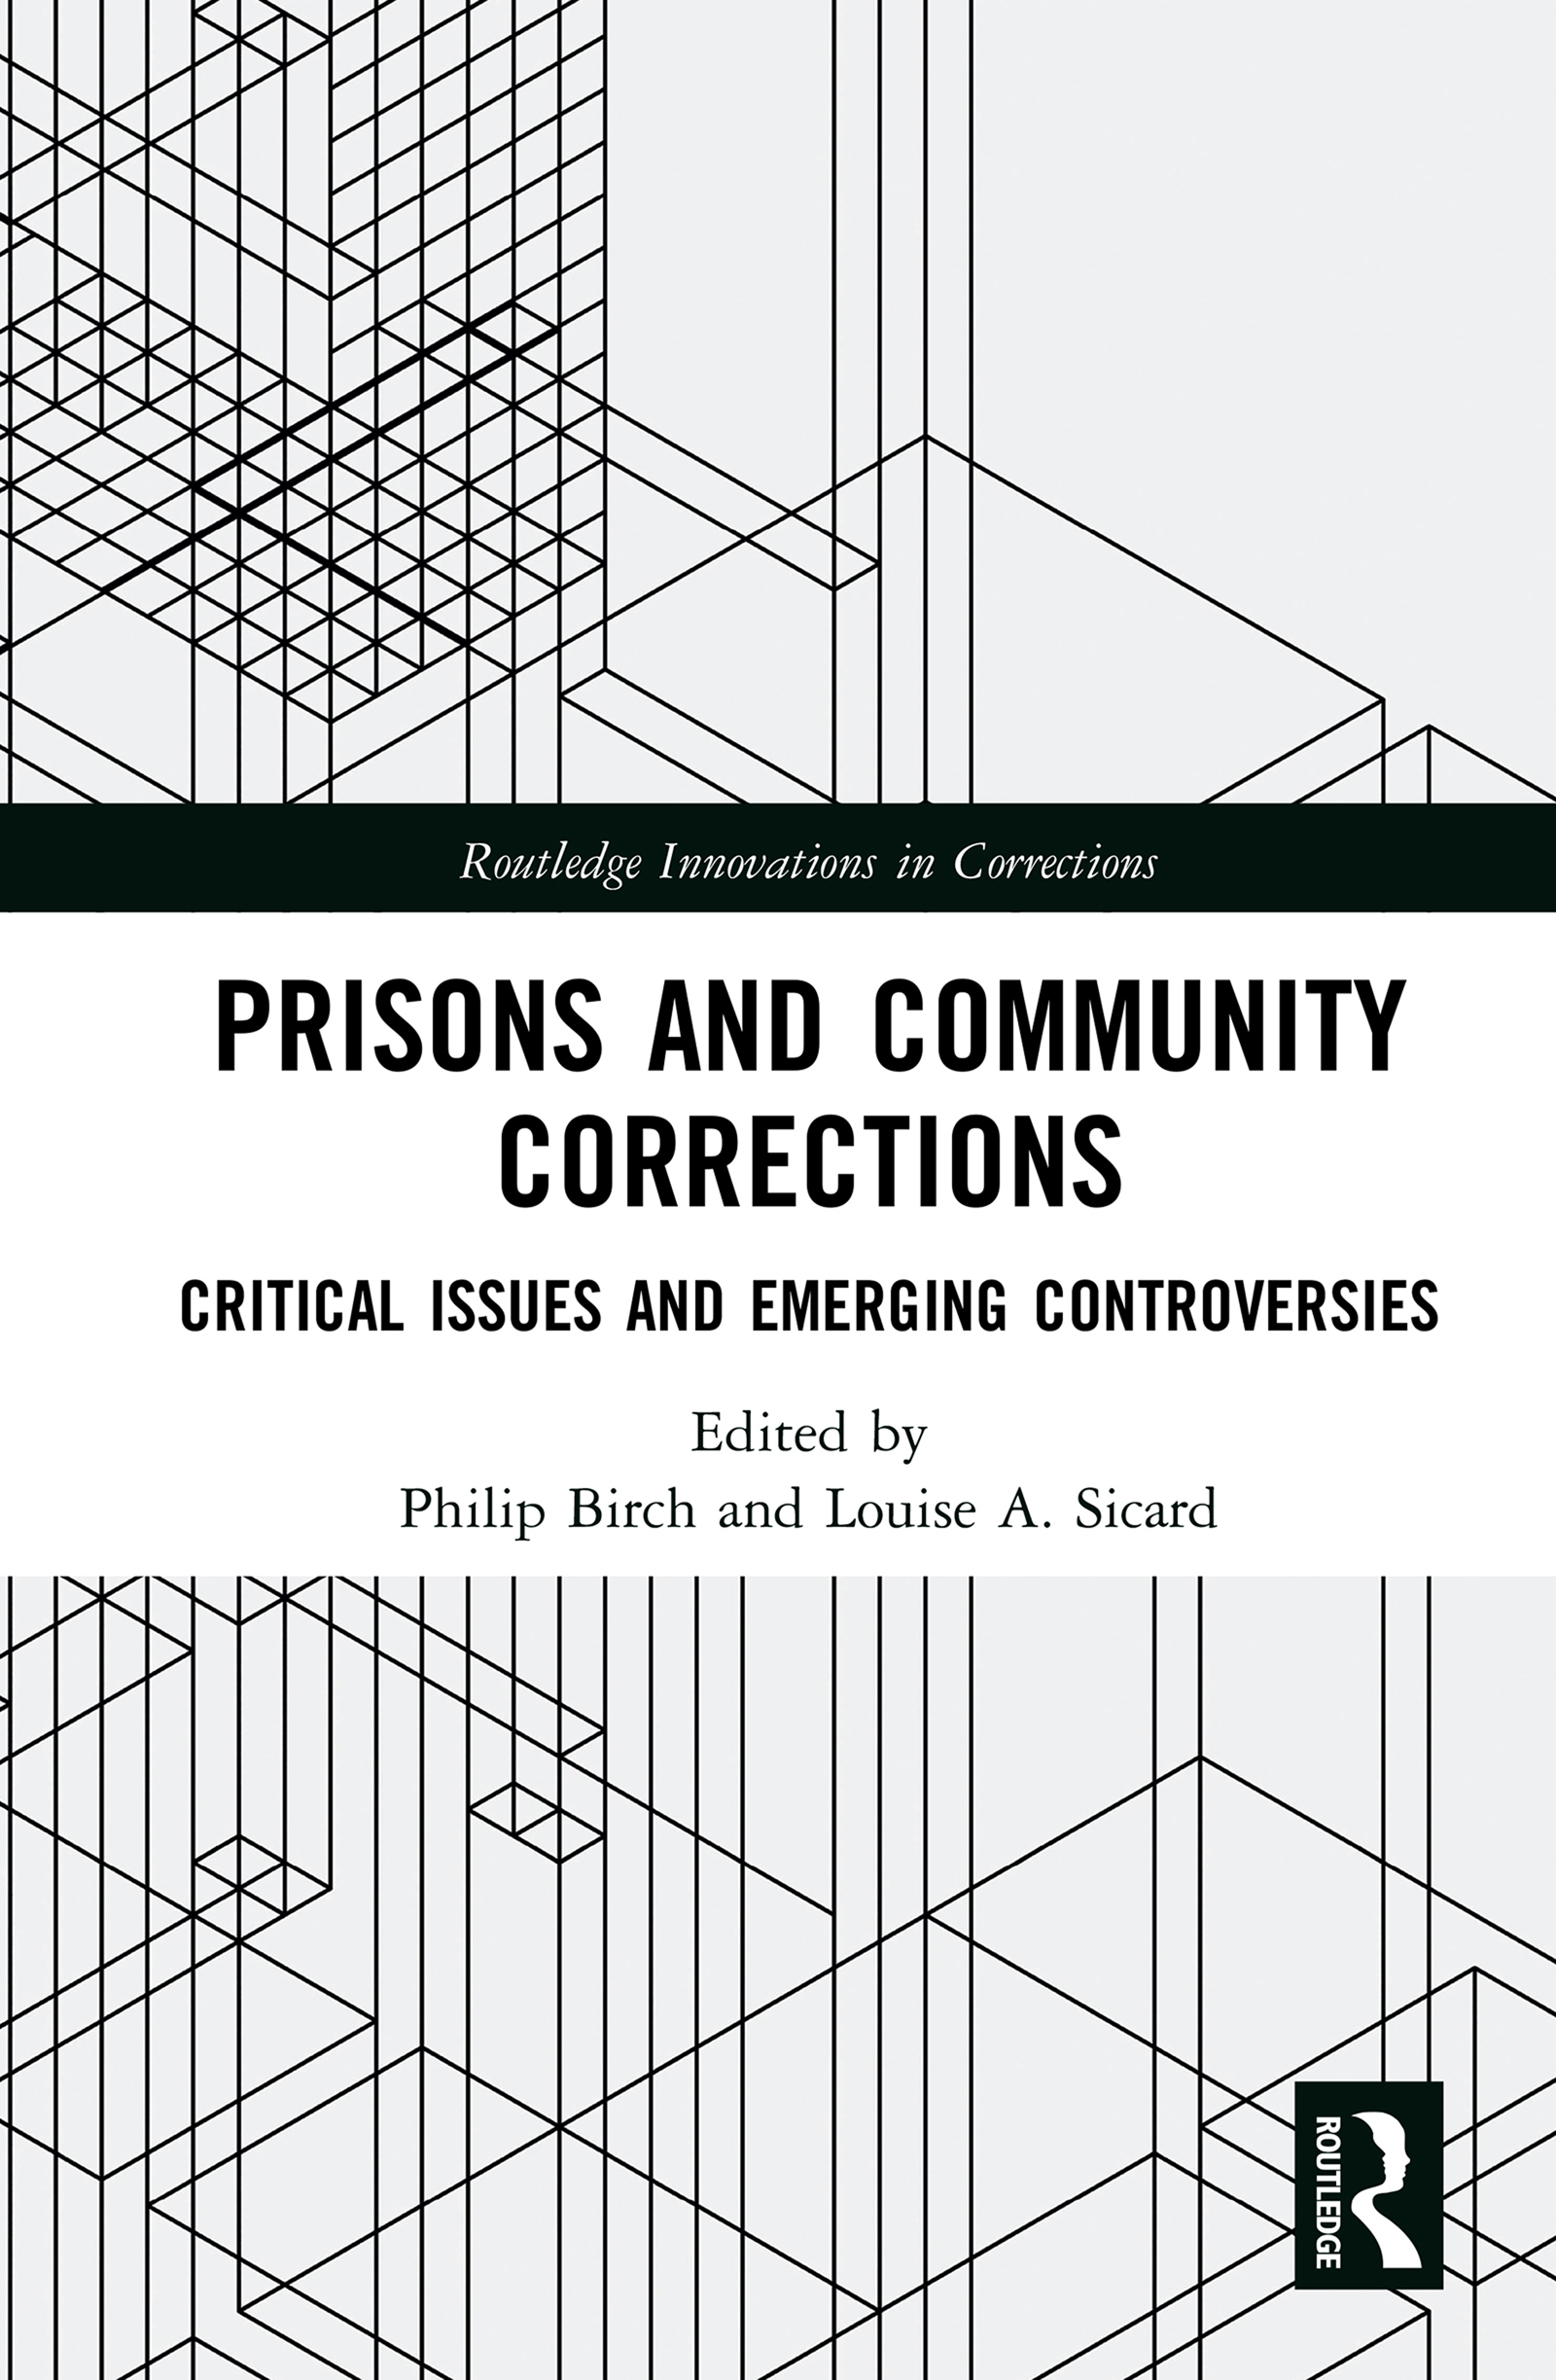 Prisons and Community Corrections